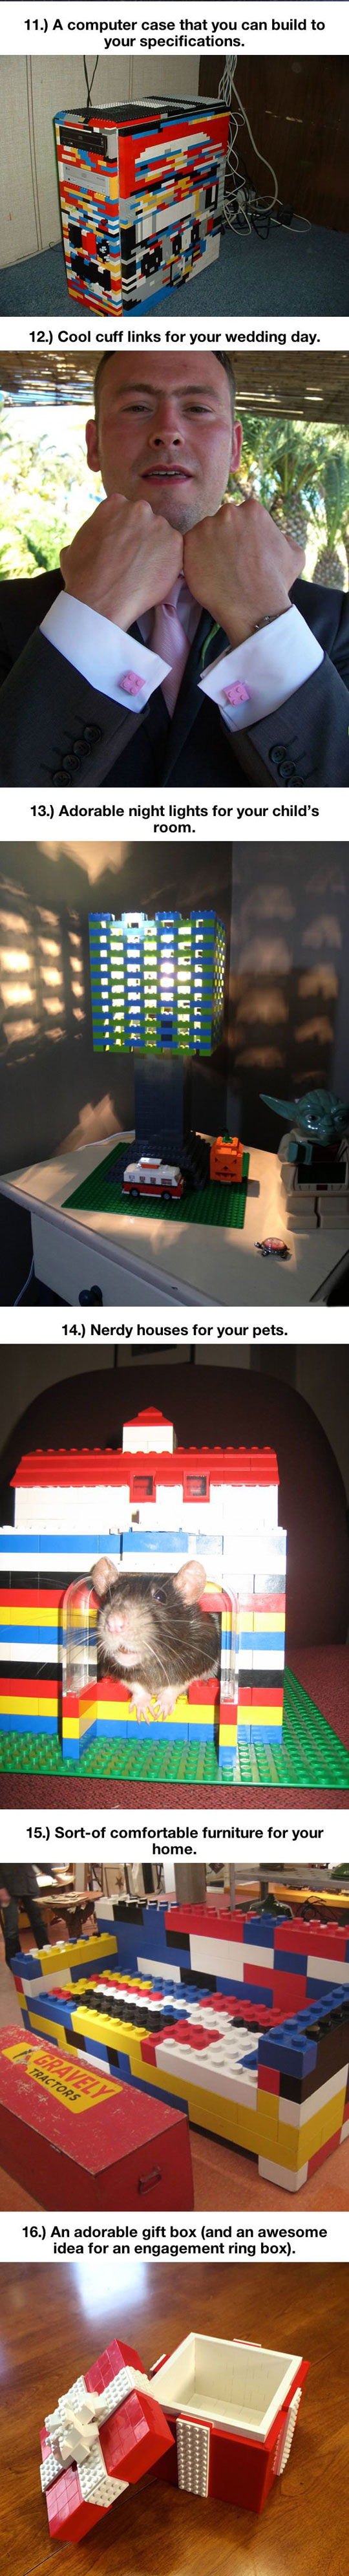 cool-LEGO-uses-weird-gift-box